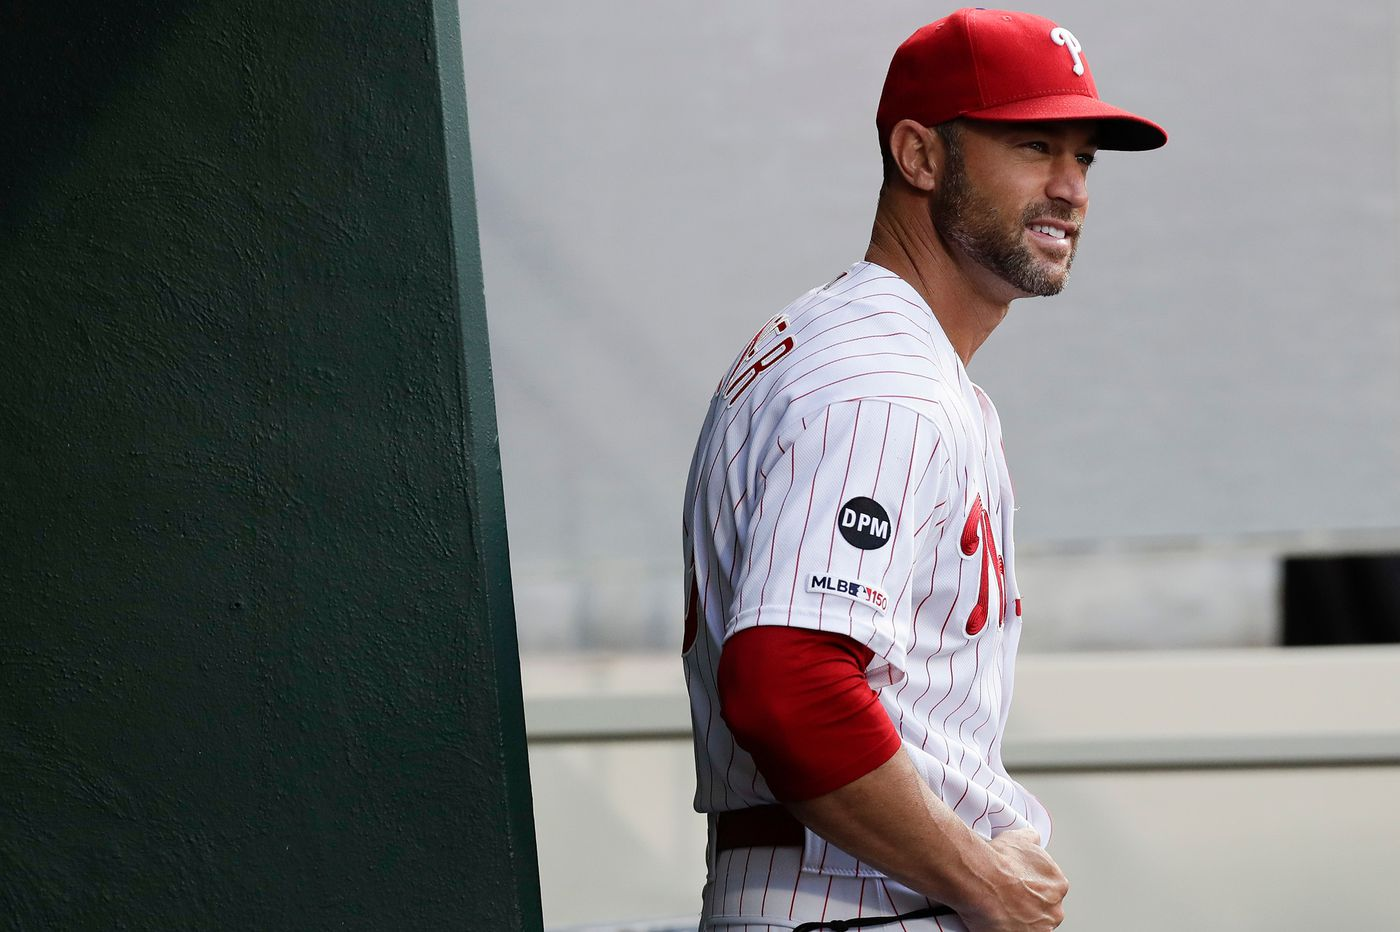 Gabe Kapler, days after Phillies fired him, has an interview with San Francisco Giants, according to report